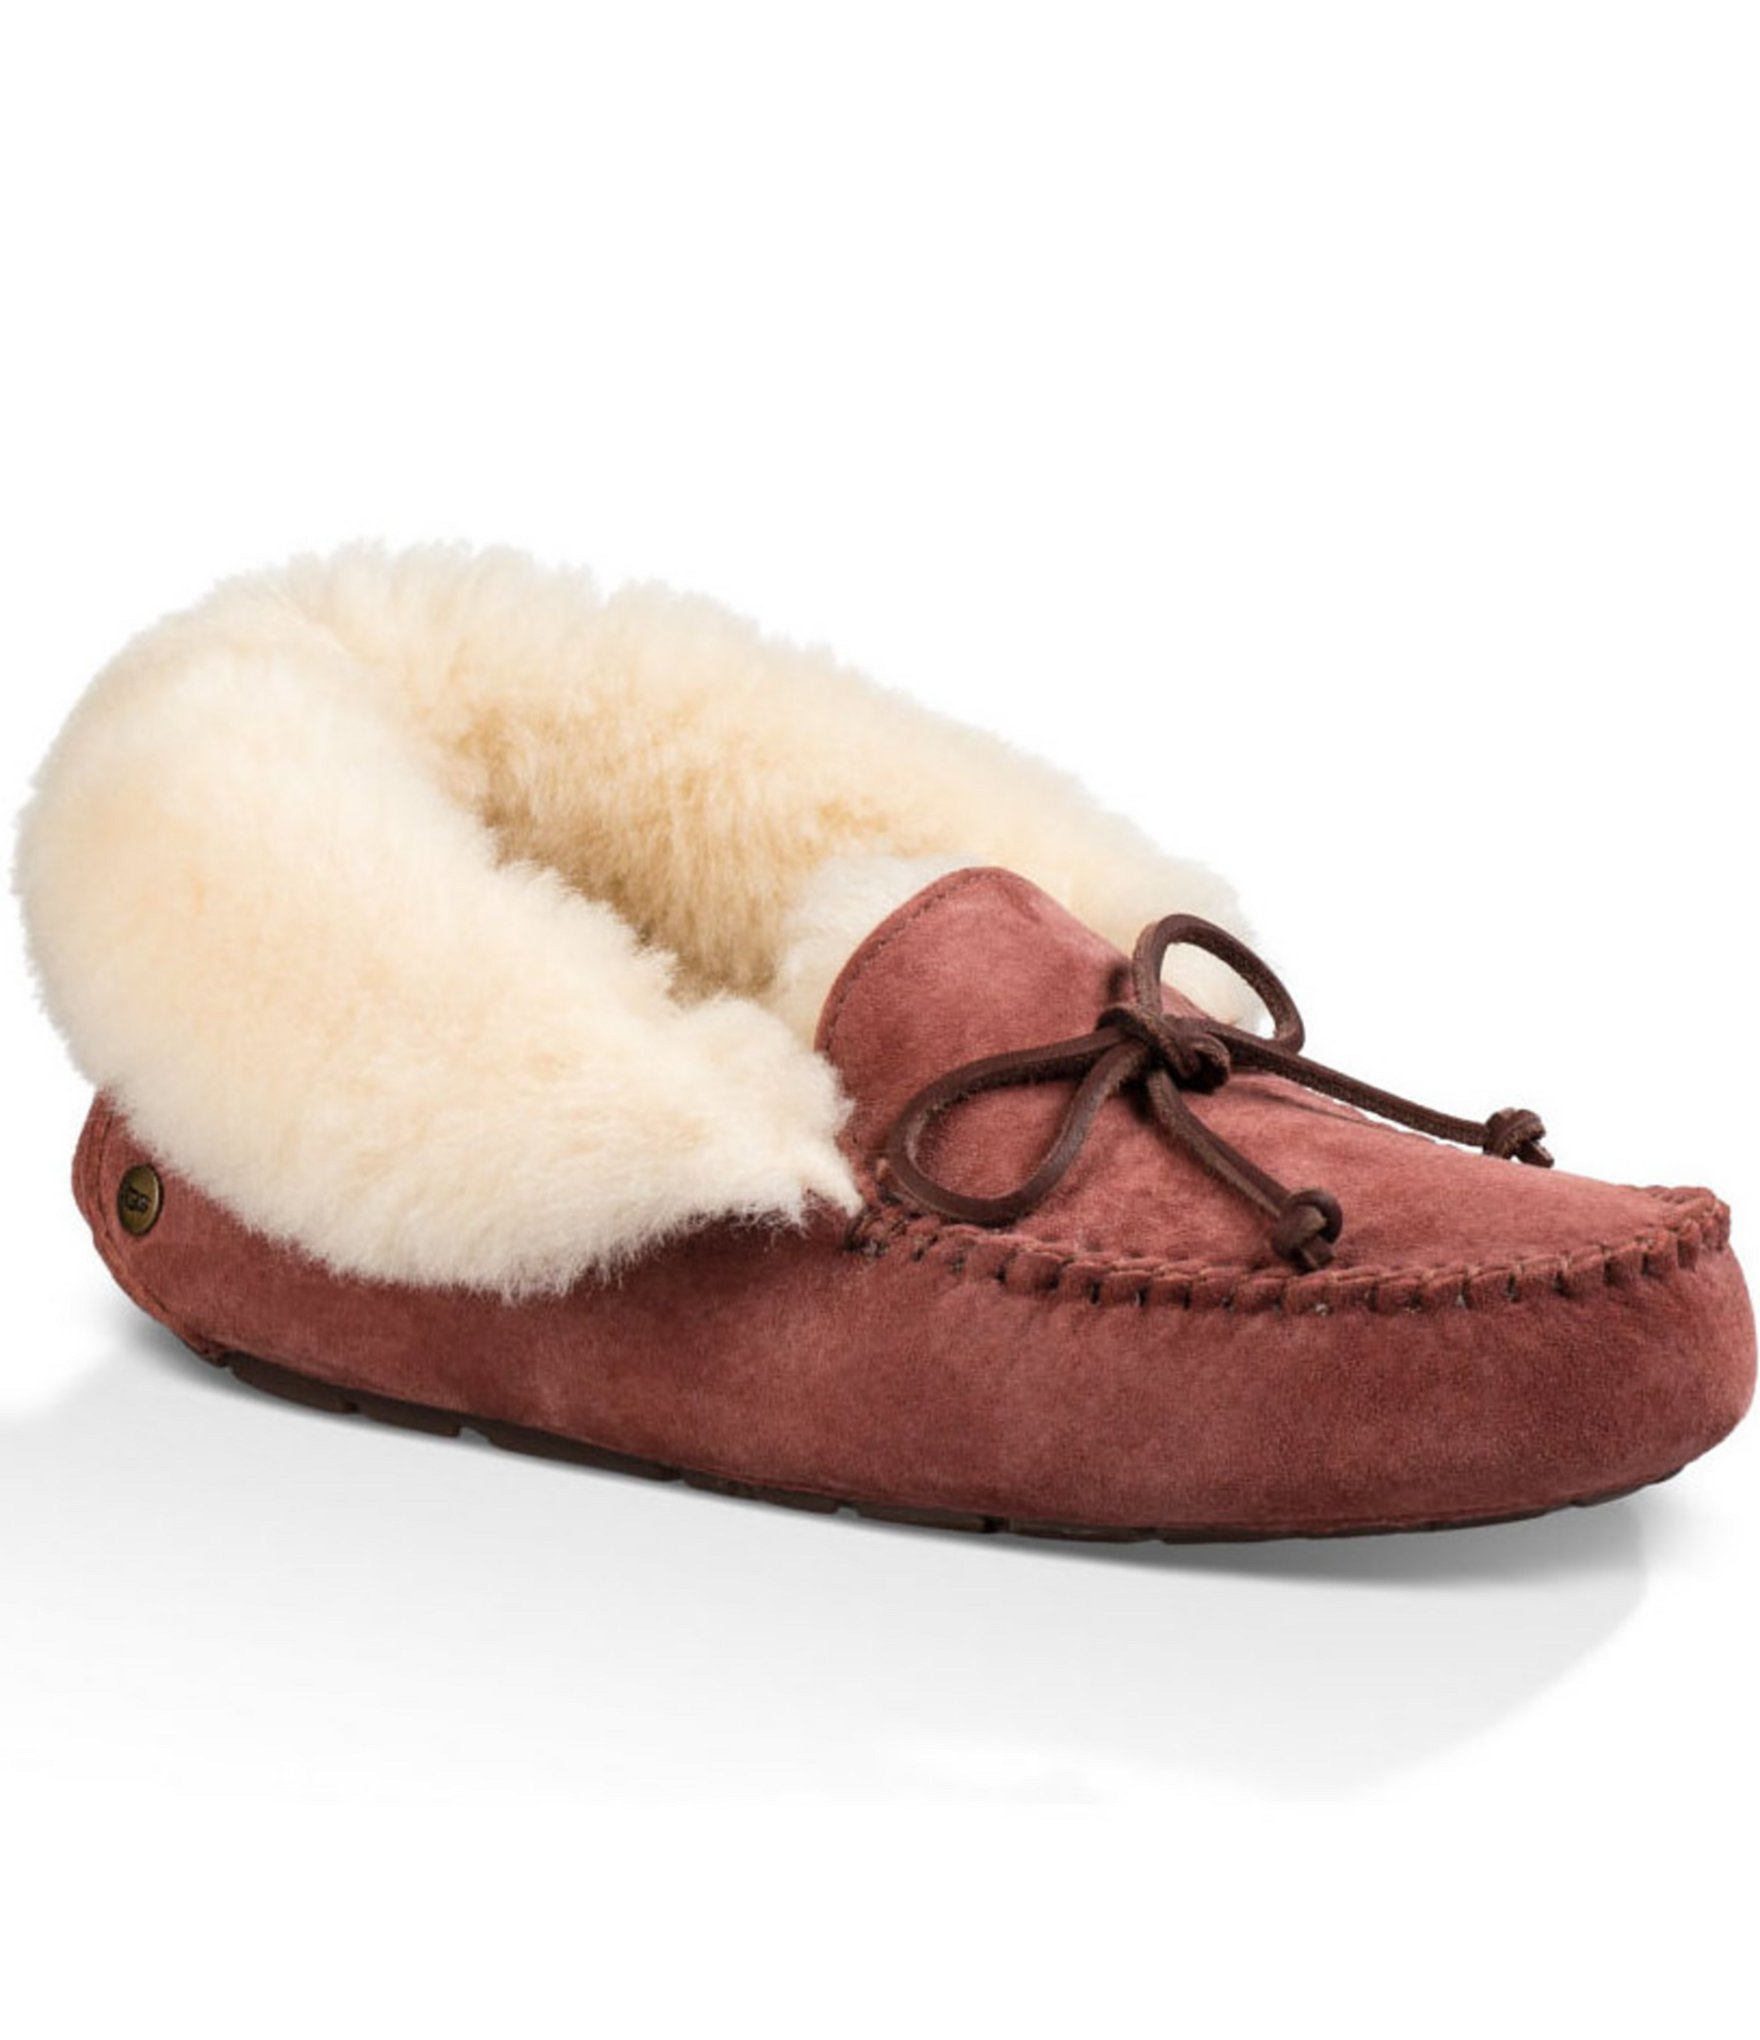 b98d0a2b69aa UGG ® Alena Bow Detail Waterproof Suede Slippers - Lyst